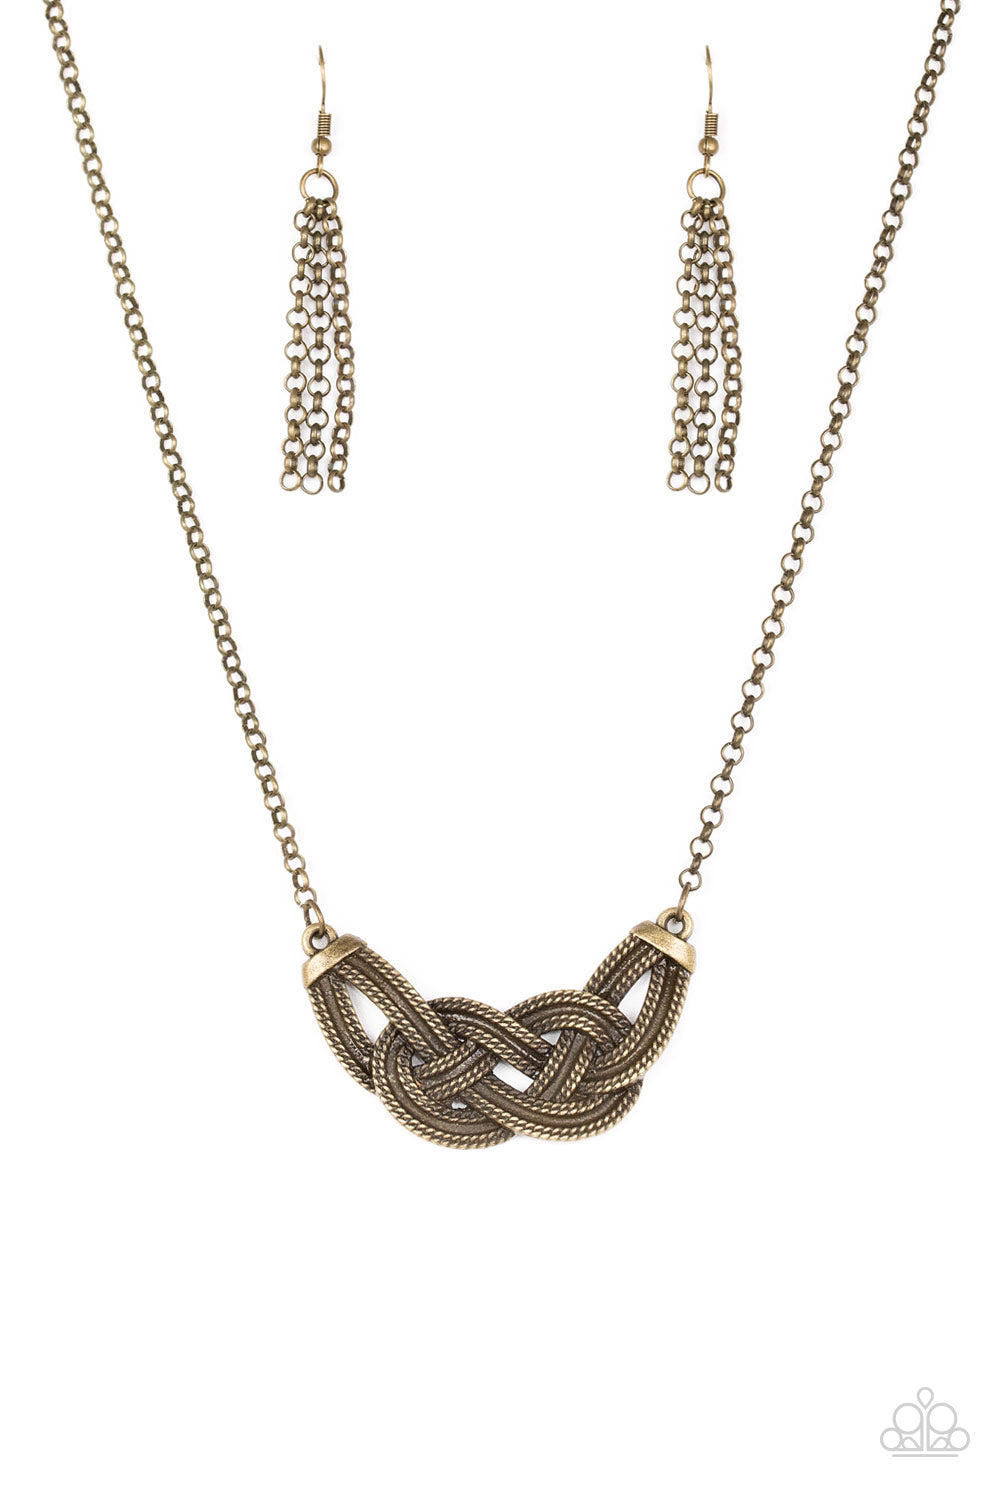 Paparazzi Necklace - Nautically Naples - Brass